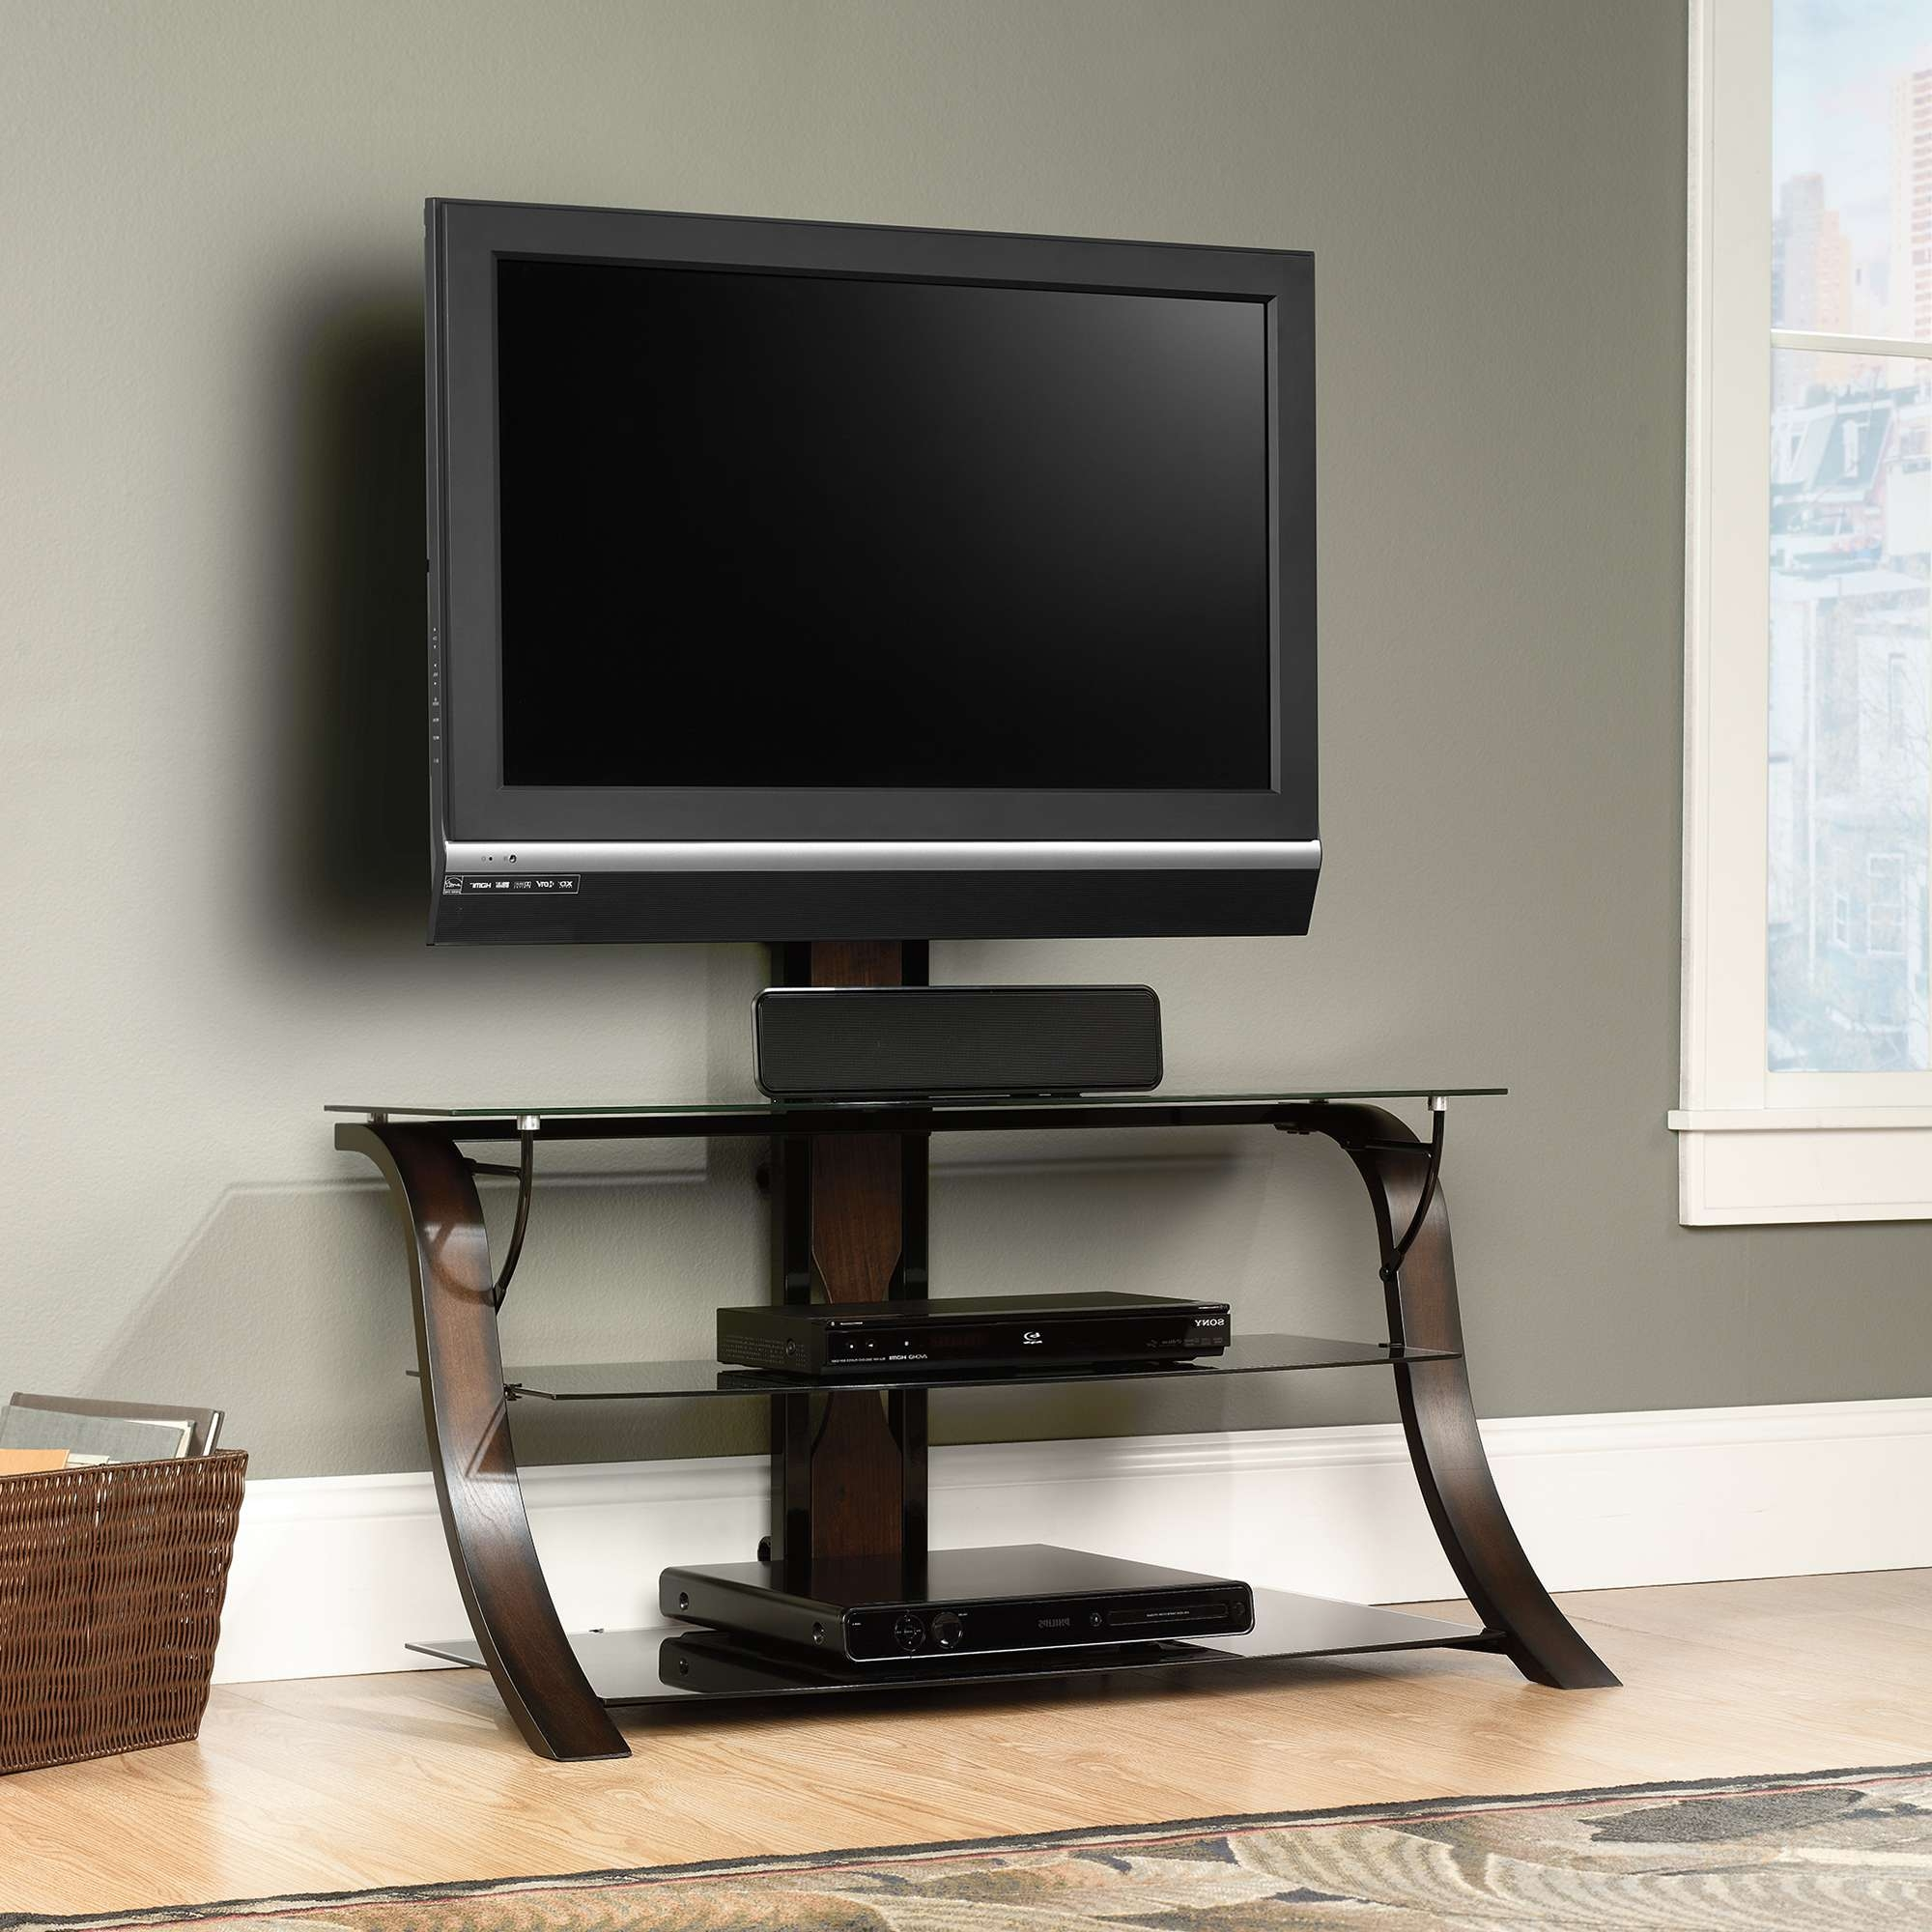 Trend Corner Tv Stands For 50 Inch Tv 41 For Home Improvement Intended For Corner Tv Stands For 50 Inch Tv (View 15 of 20)